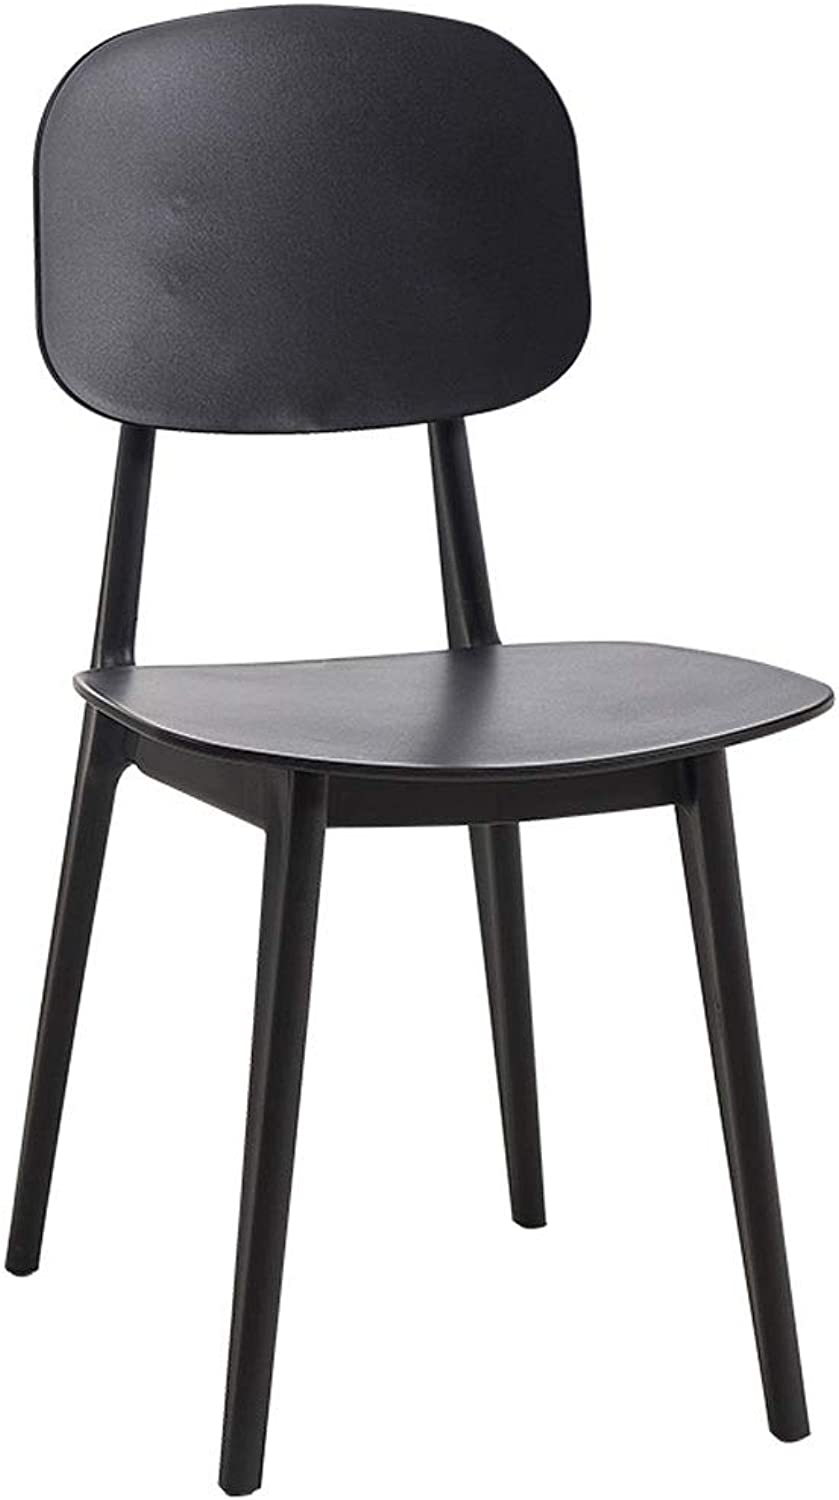 Nordic Creative Plastic Chair Casual Dining Chair Modern Minimalist Home Back Desk Chair Restaurant Coffee ins Chair (color   Black)